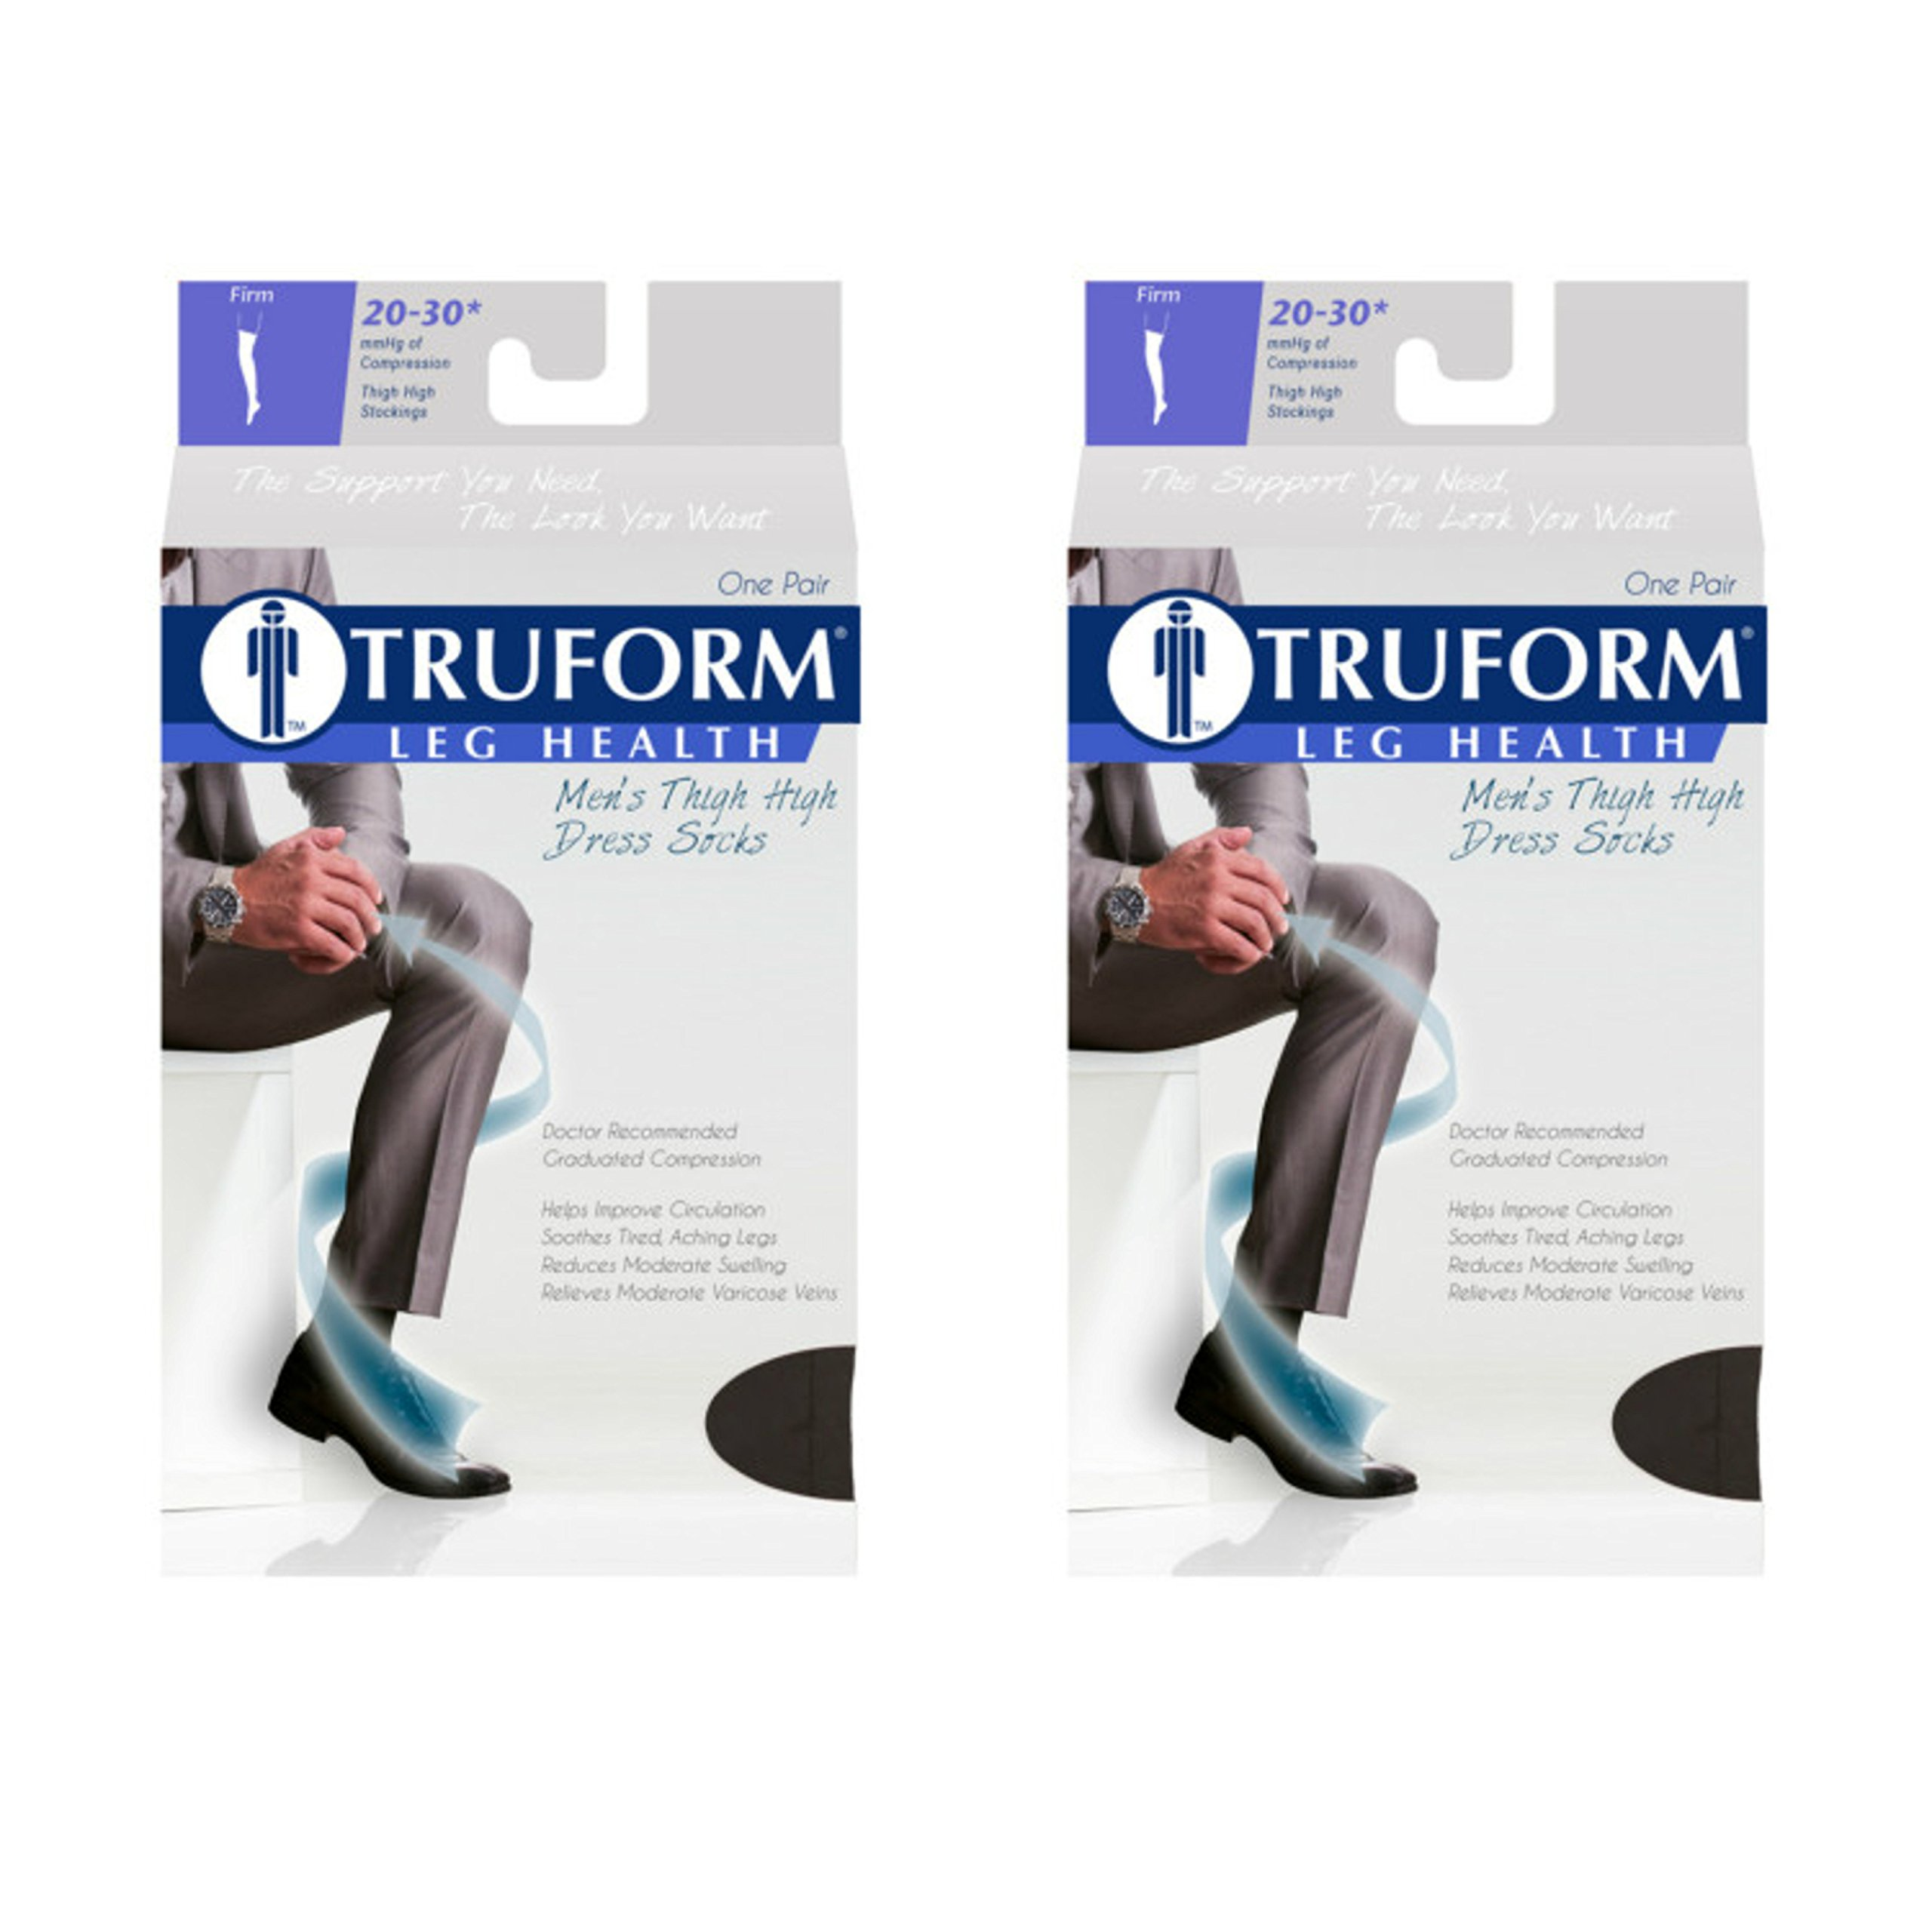 Truform 1945 Men's Thigh High Socks, Dress Style, 20-30 mmHg, Black, Large (Pack of 2)